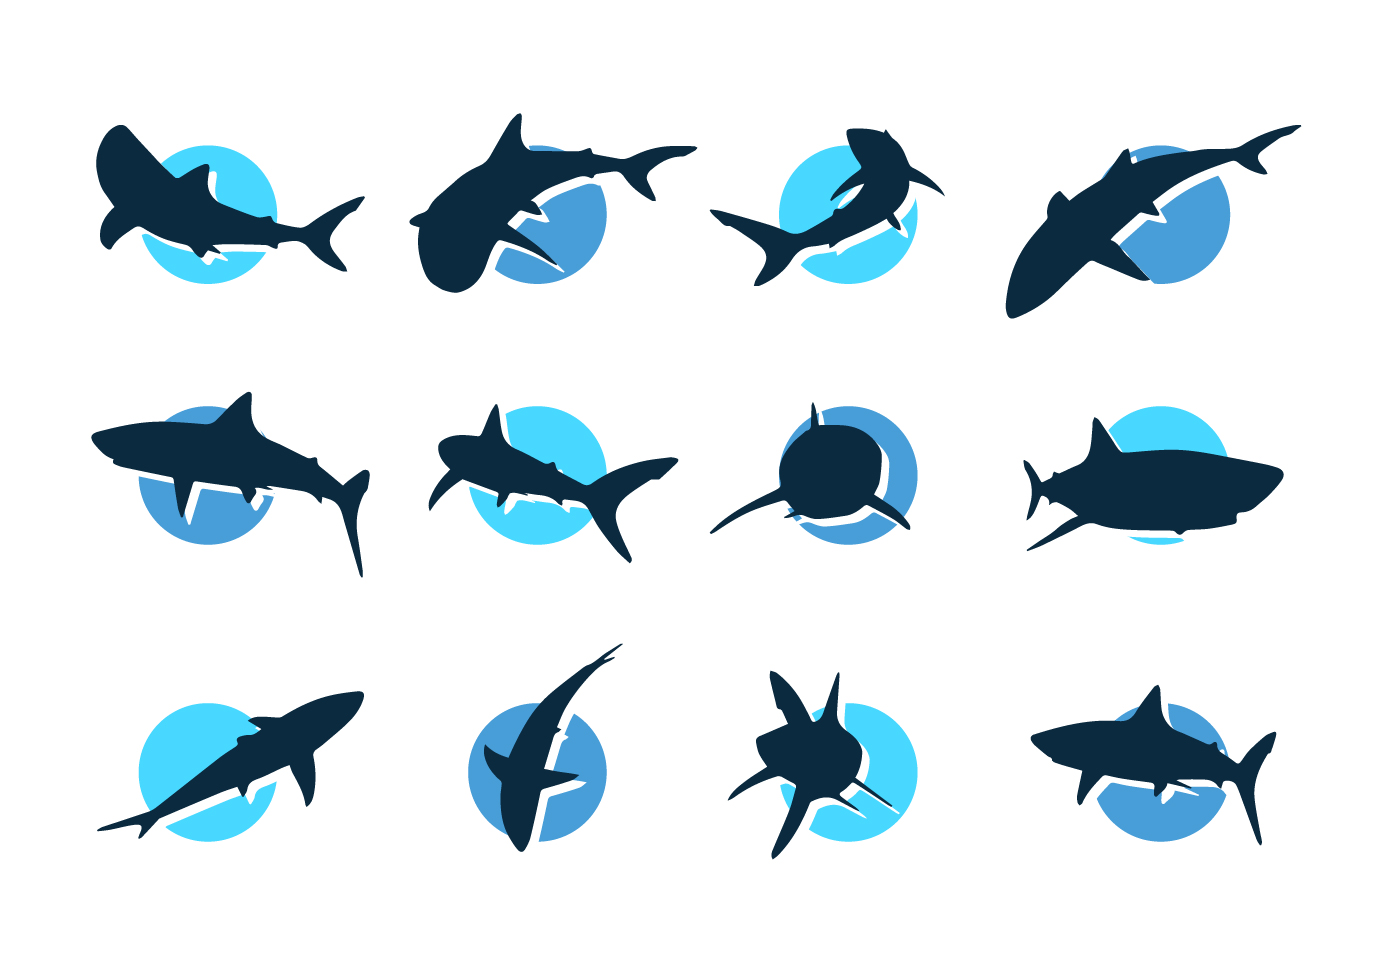 1400x980 Shark Vector Silhouettes Icons Free